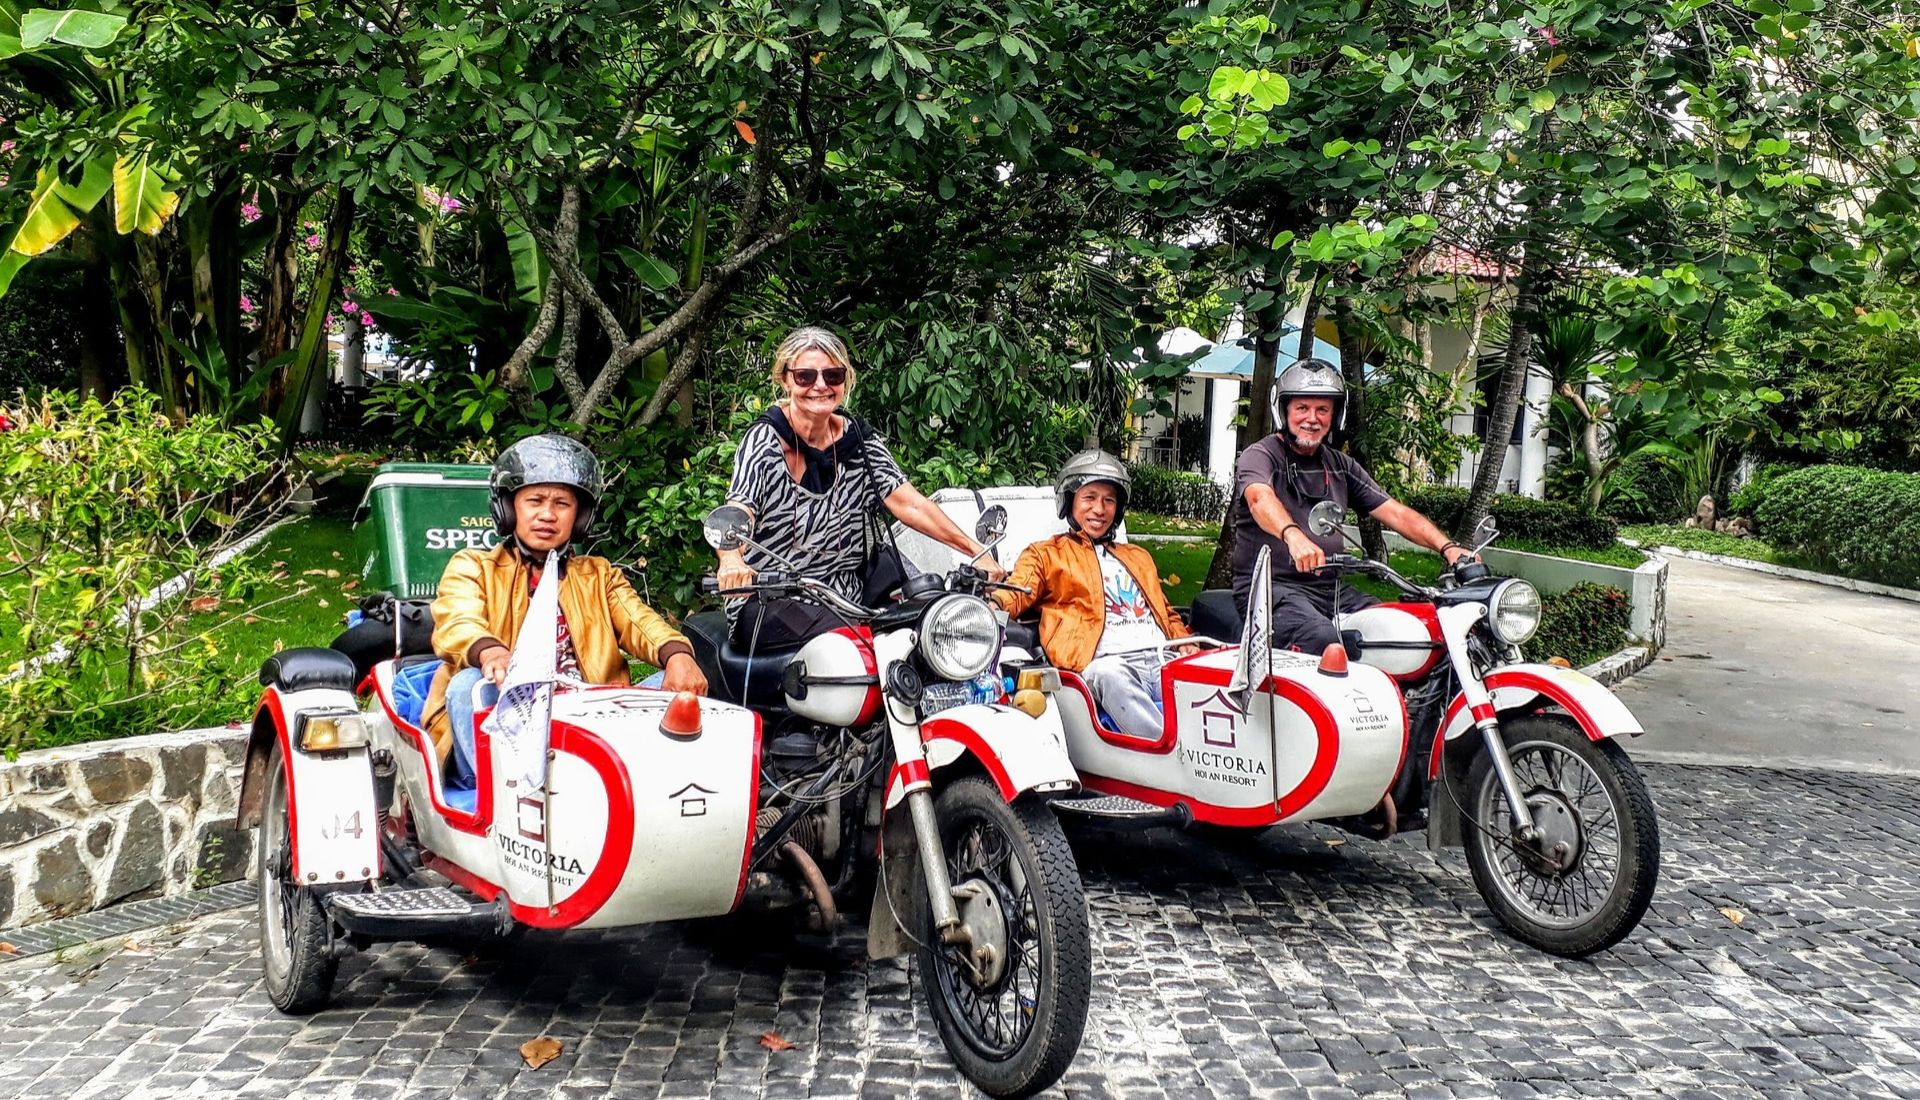 End of our sidecartours